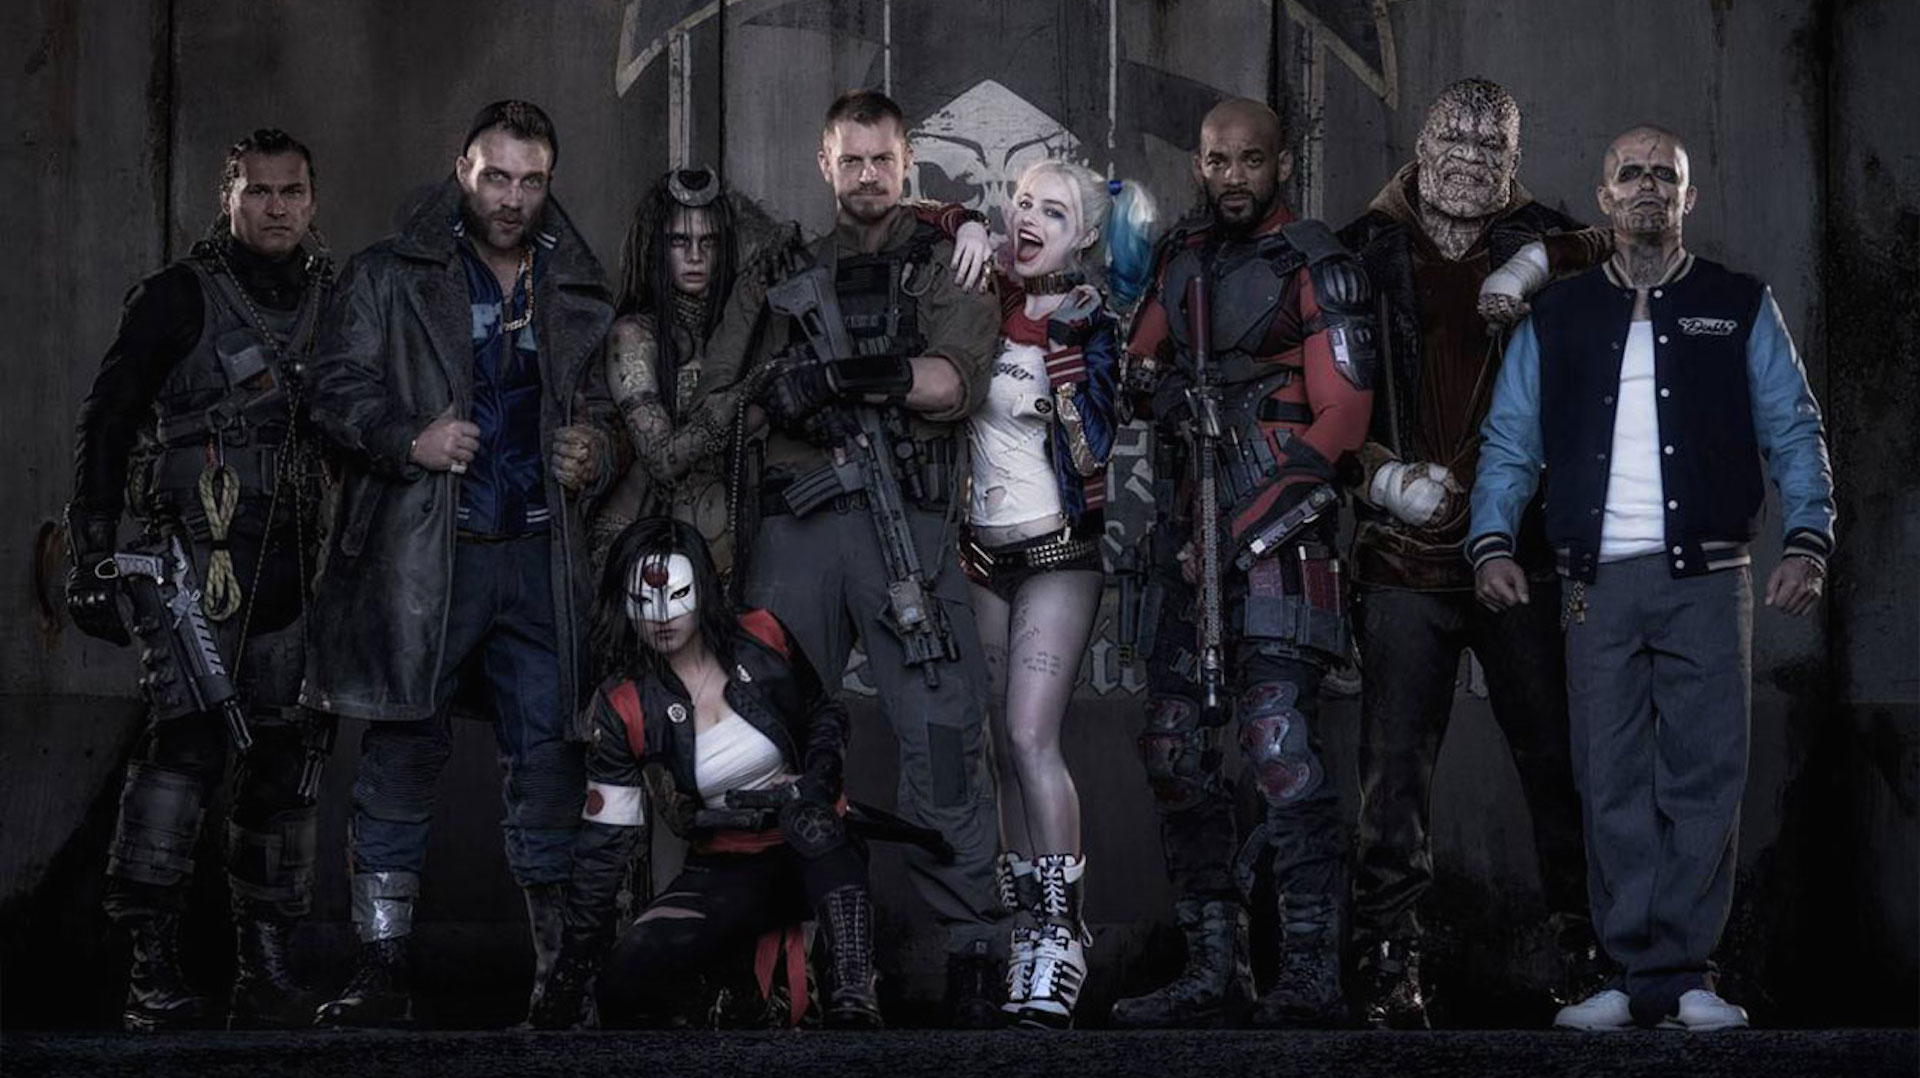 Forget the critics: 7 reasons 'Suicide Squad' is undeniably awesome if you're a fanboy